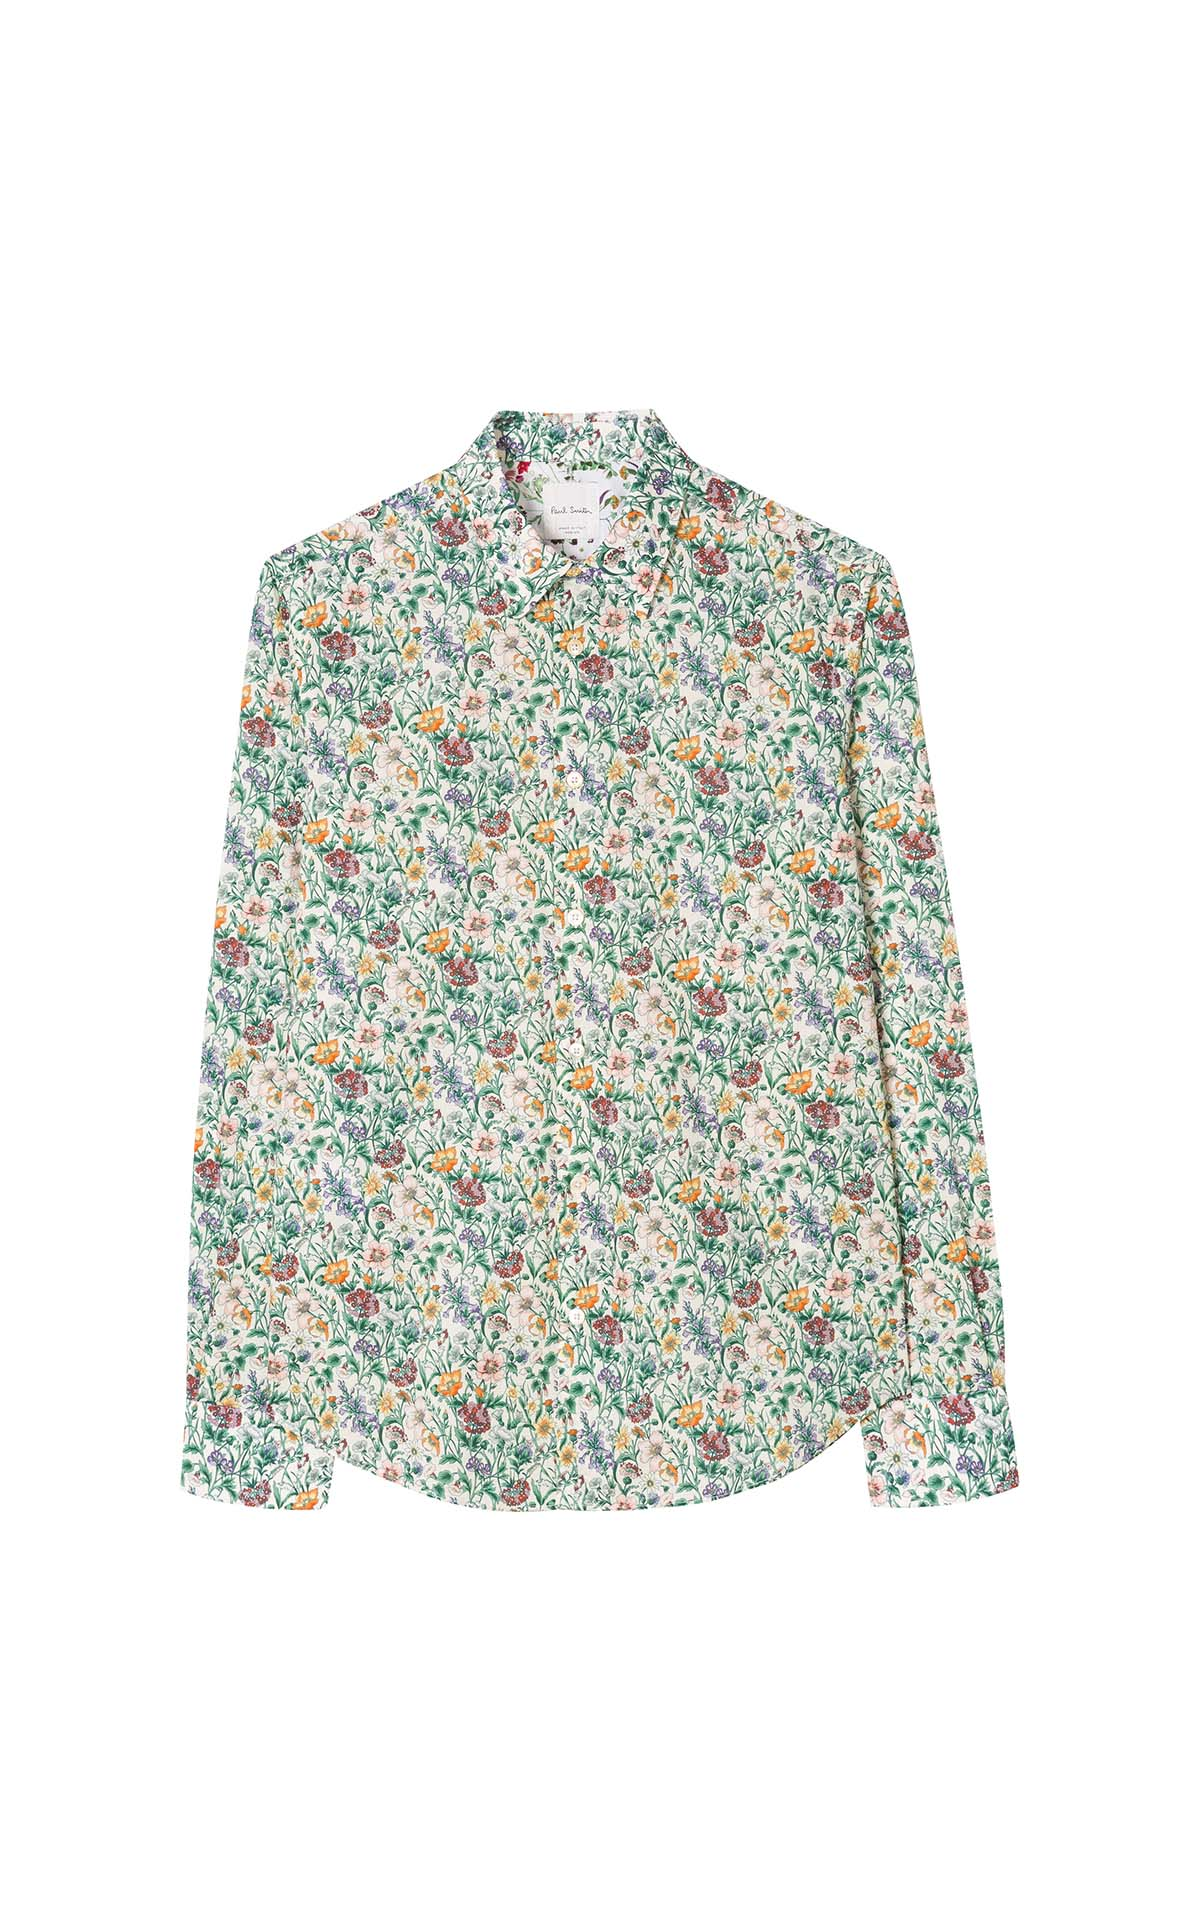 Men's floral shirt at The Bicester Village Shopping Collection